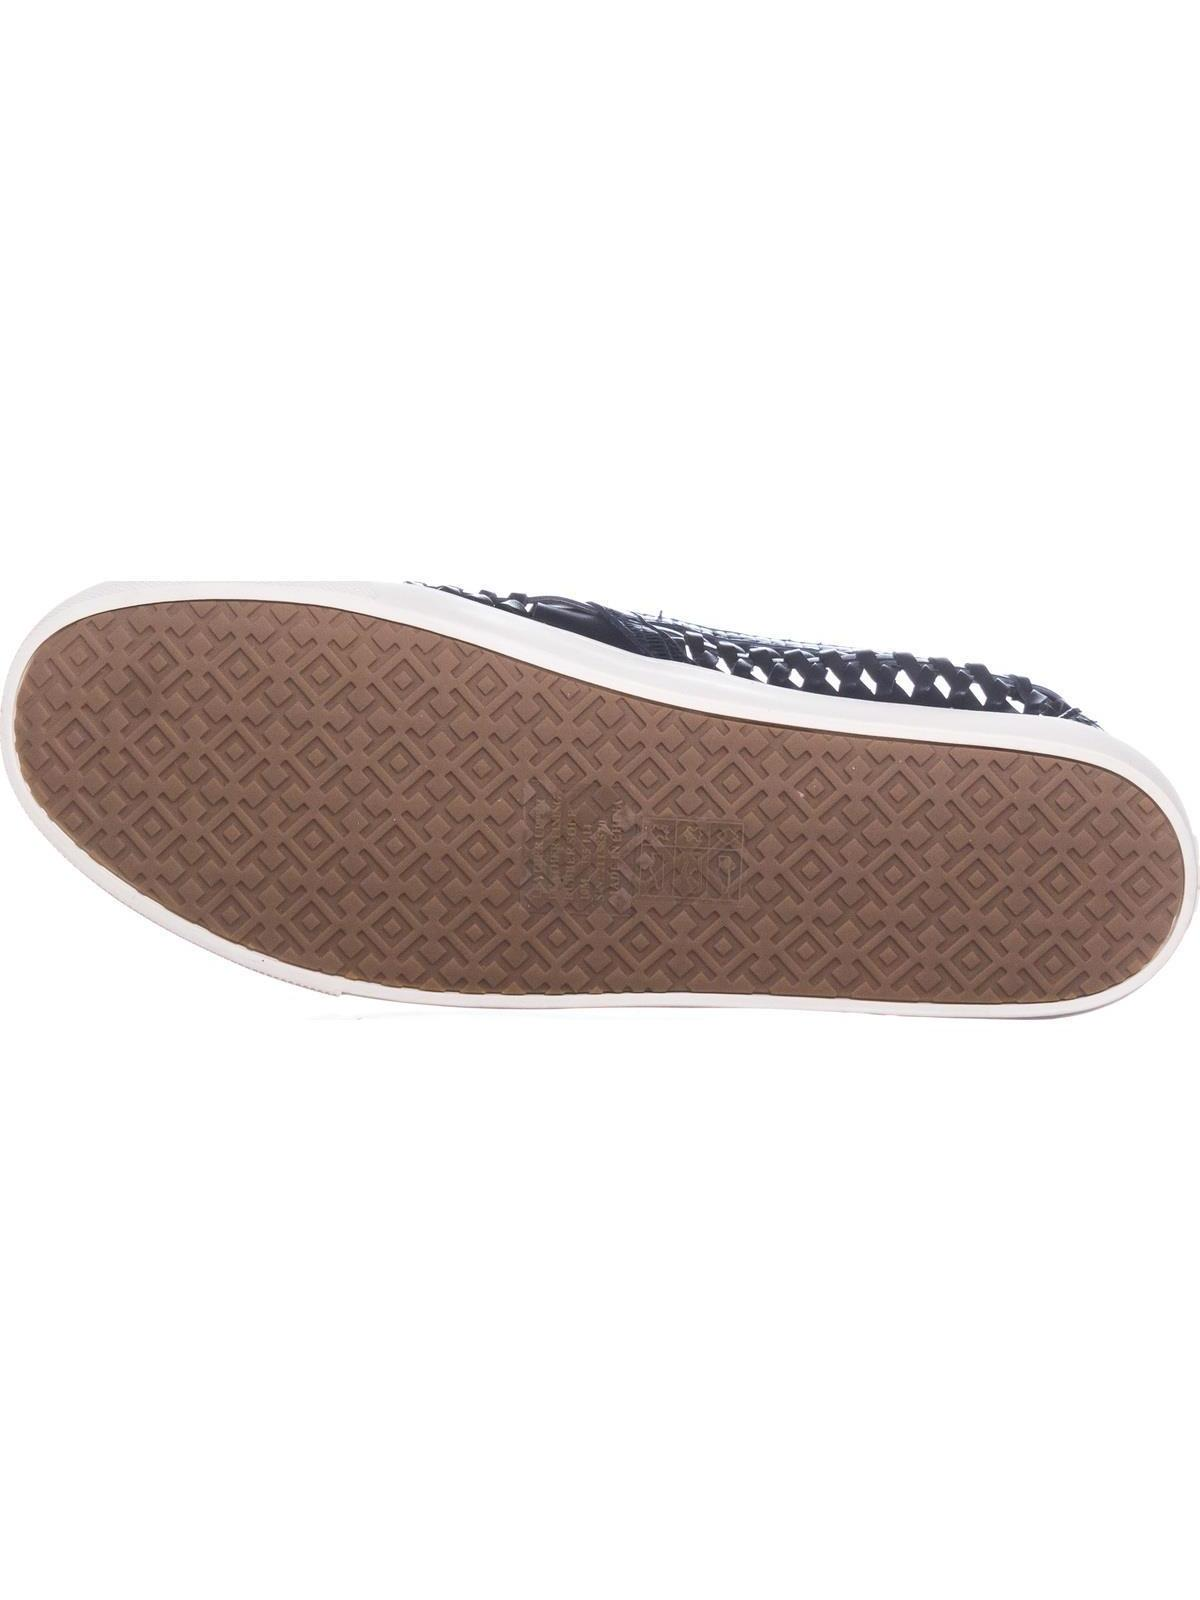 05fb87cce69d Tory Burch Huarache Slip On Woven Sneakers